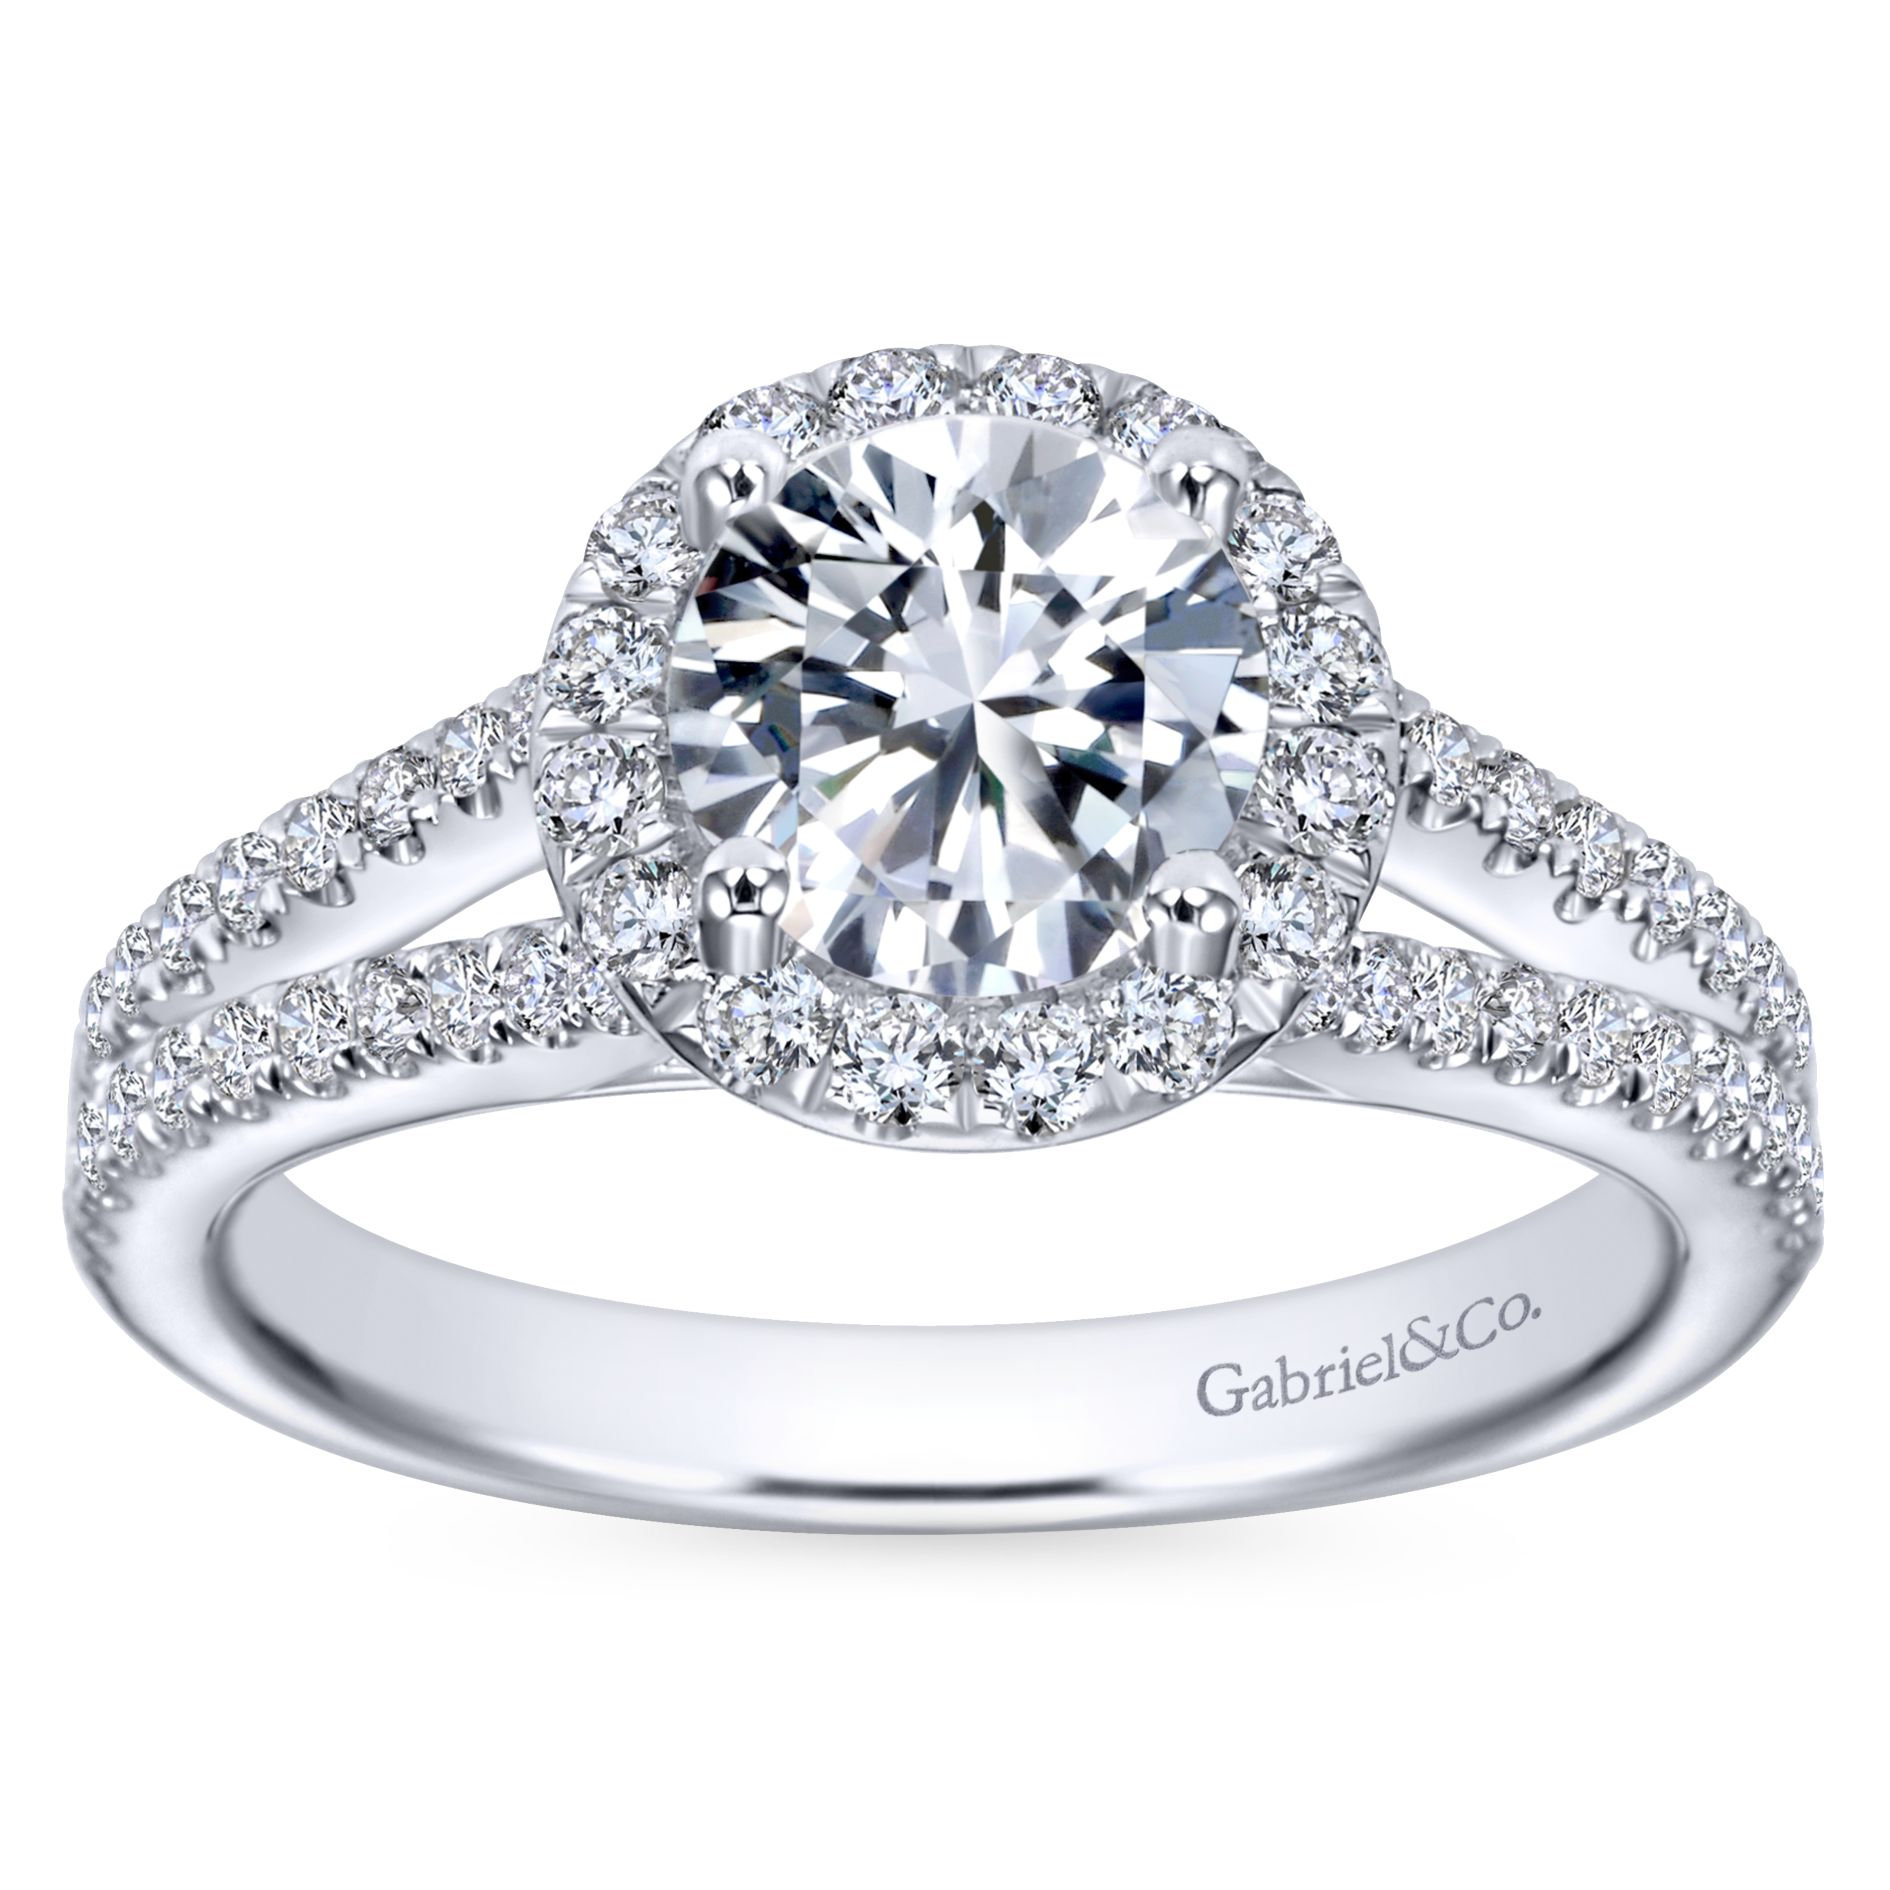 Engagement Rings - WHITE GOLD ROUND HALO DIAMOND ENGAGEMENT RING - image #5